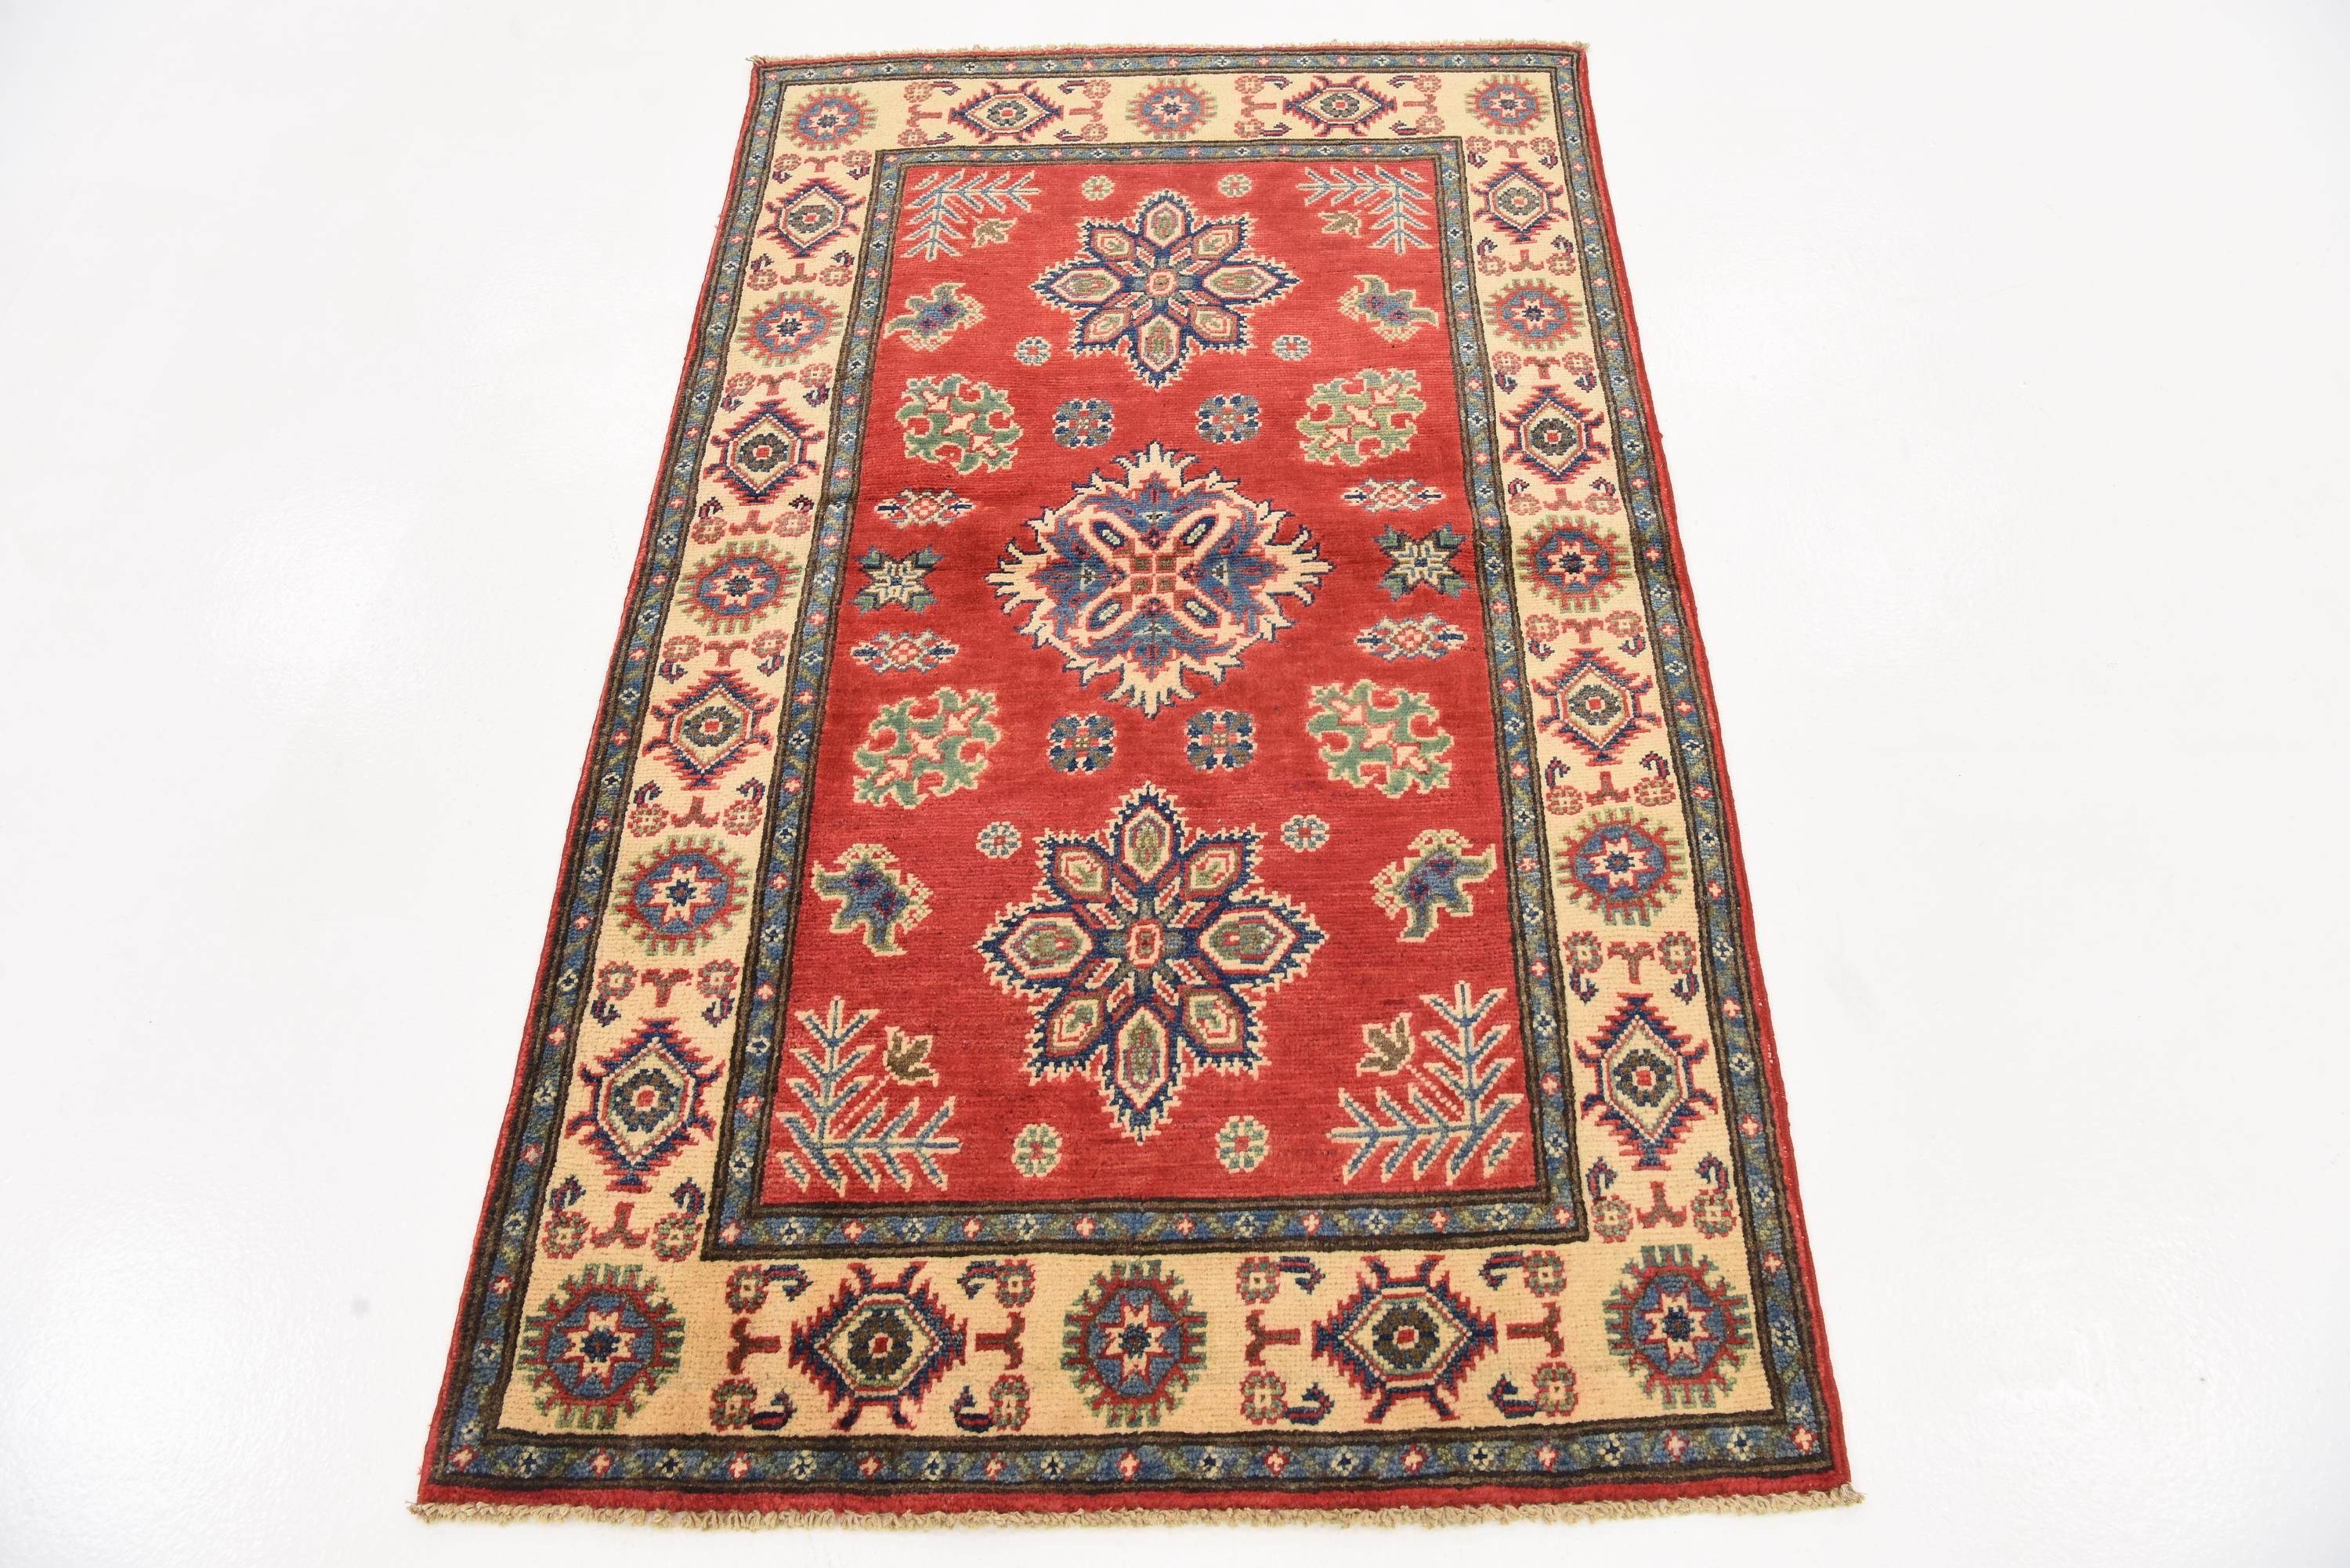 Red 3 1 X 5 2 Kazak Rug Affiliate Red Kazak Rug Sponsored With Images Area Rugs Beige Area Rugs Rugs